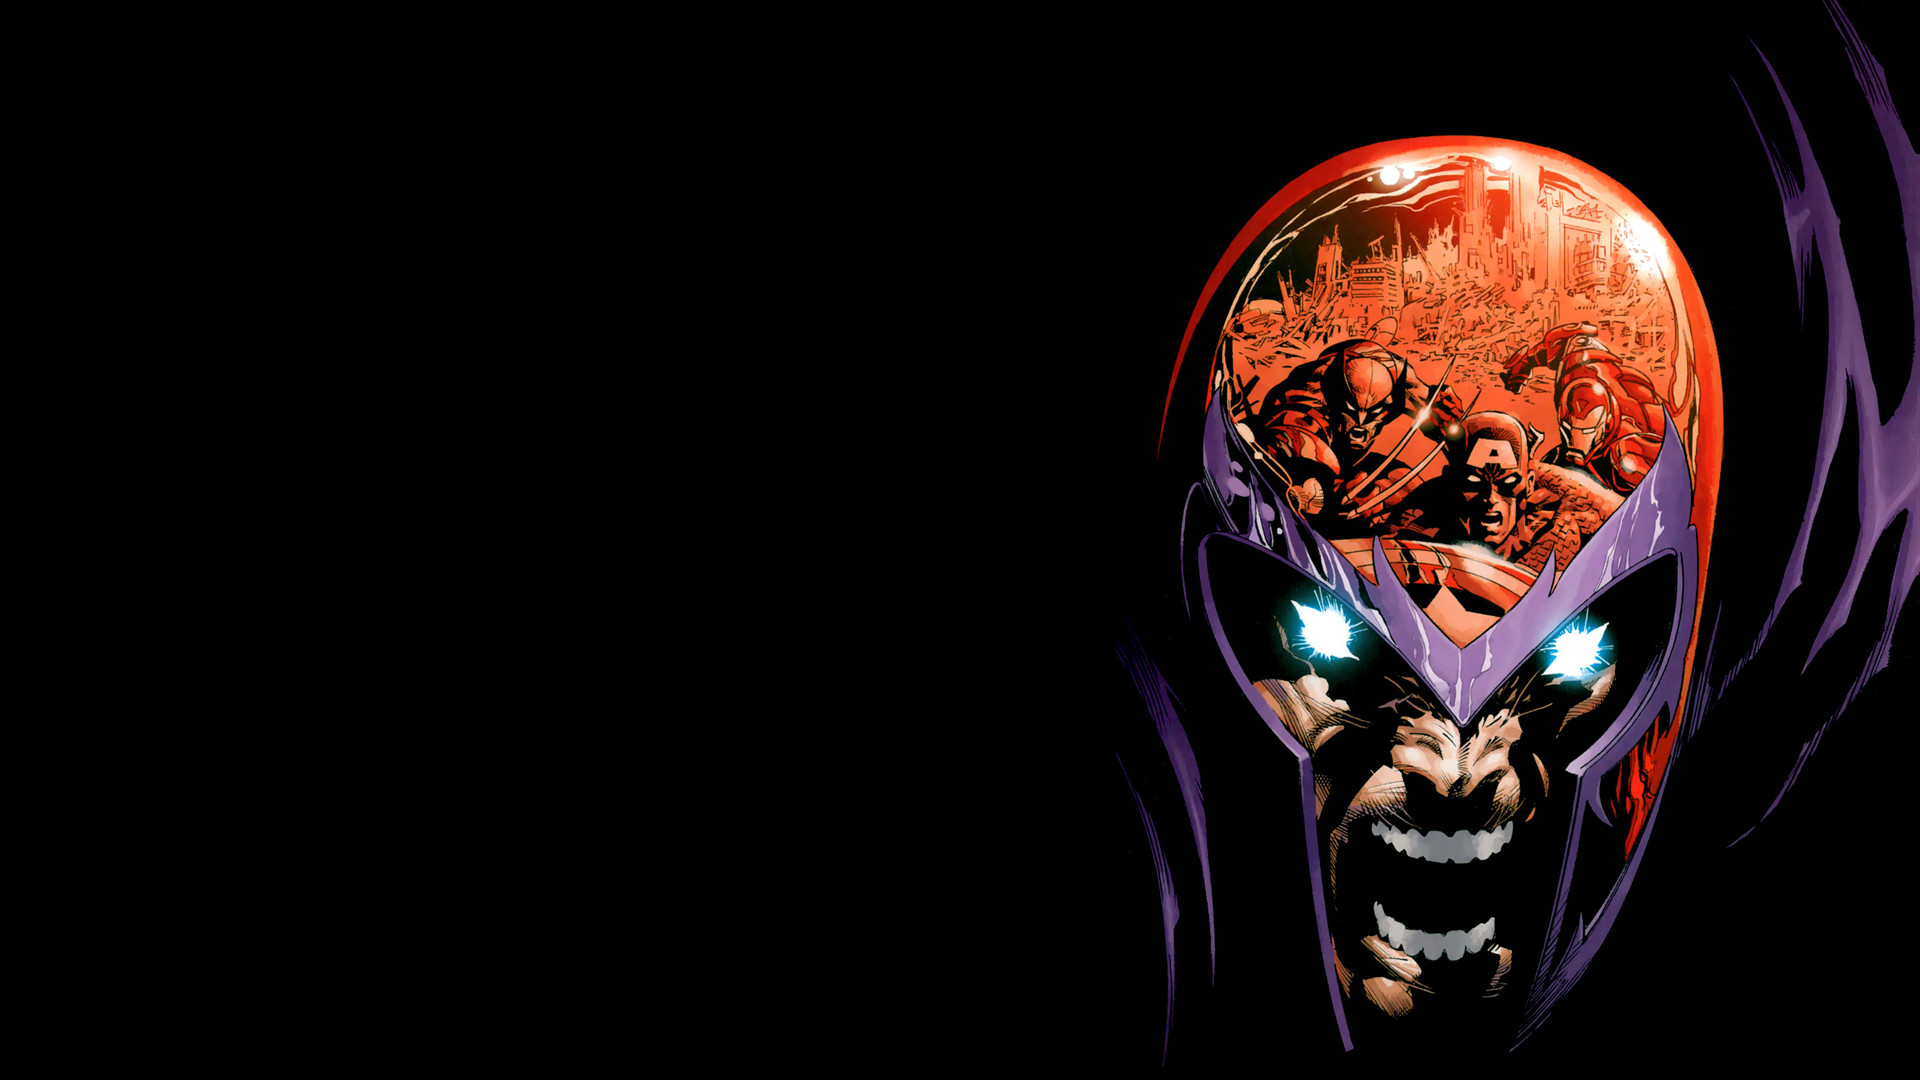 Res: 1920x1080, Magneto Defending Wallpaper